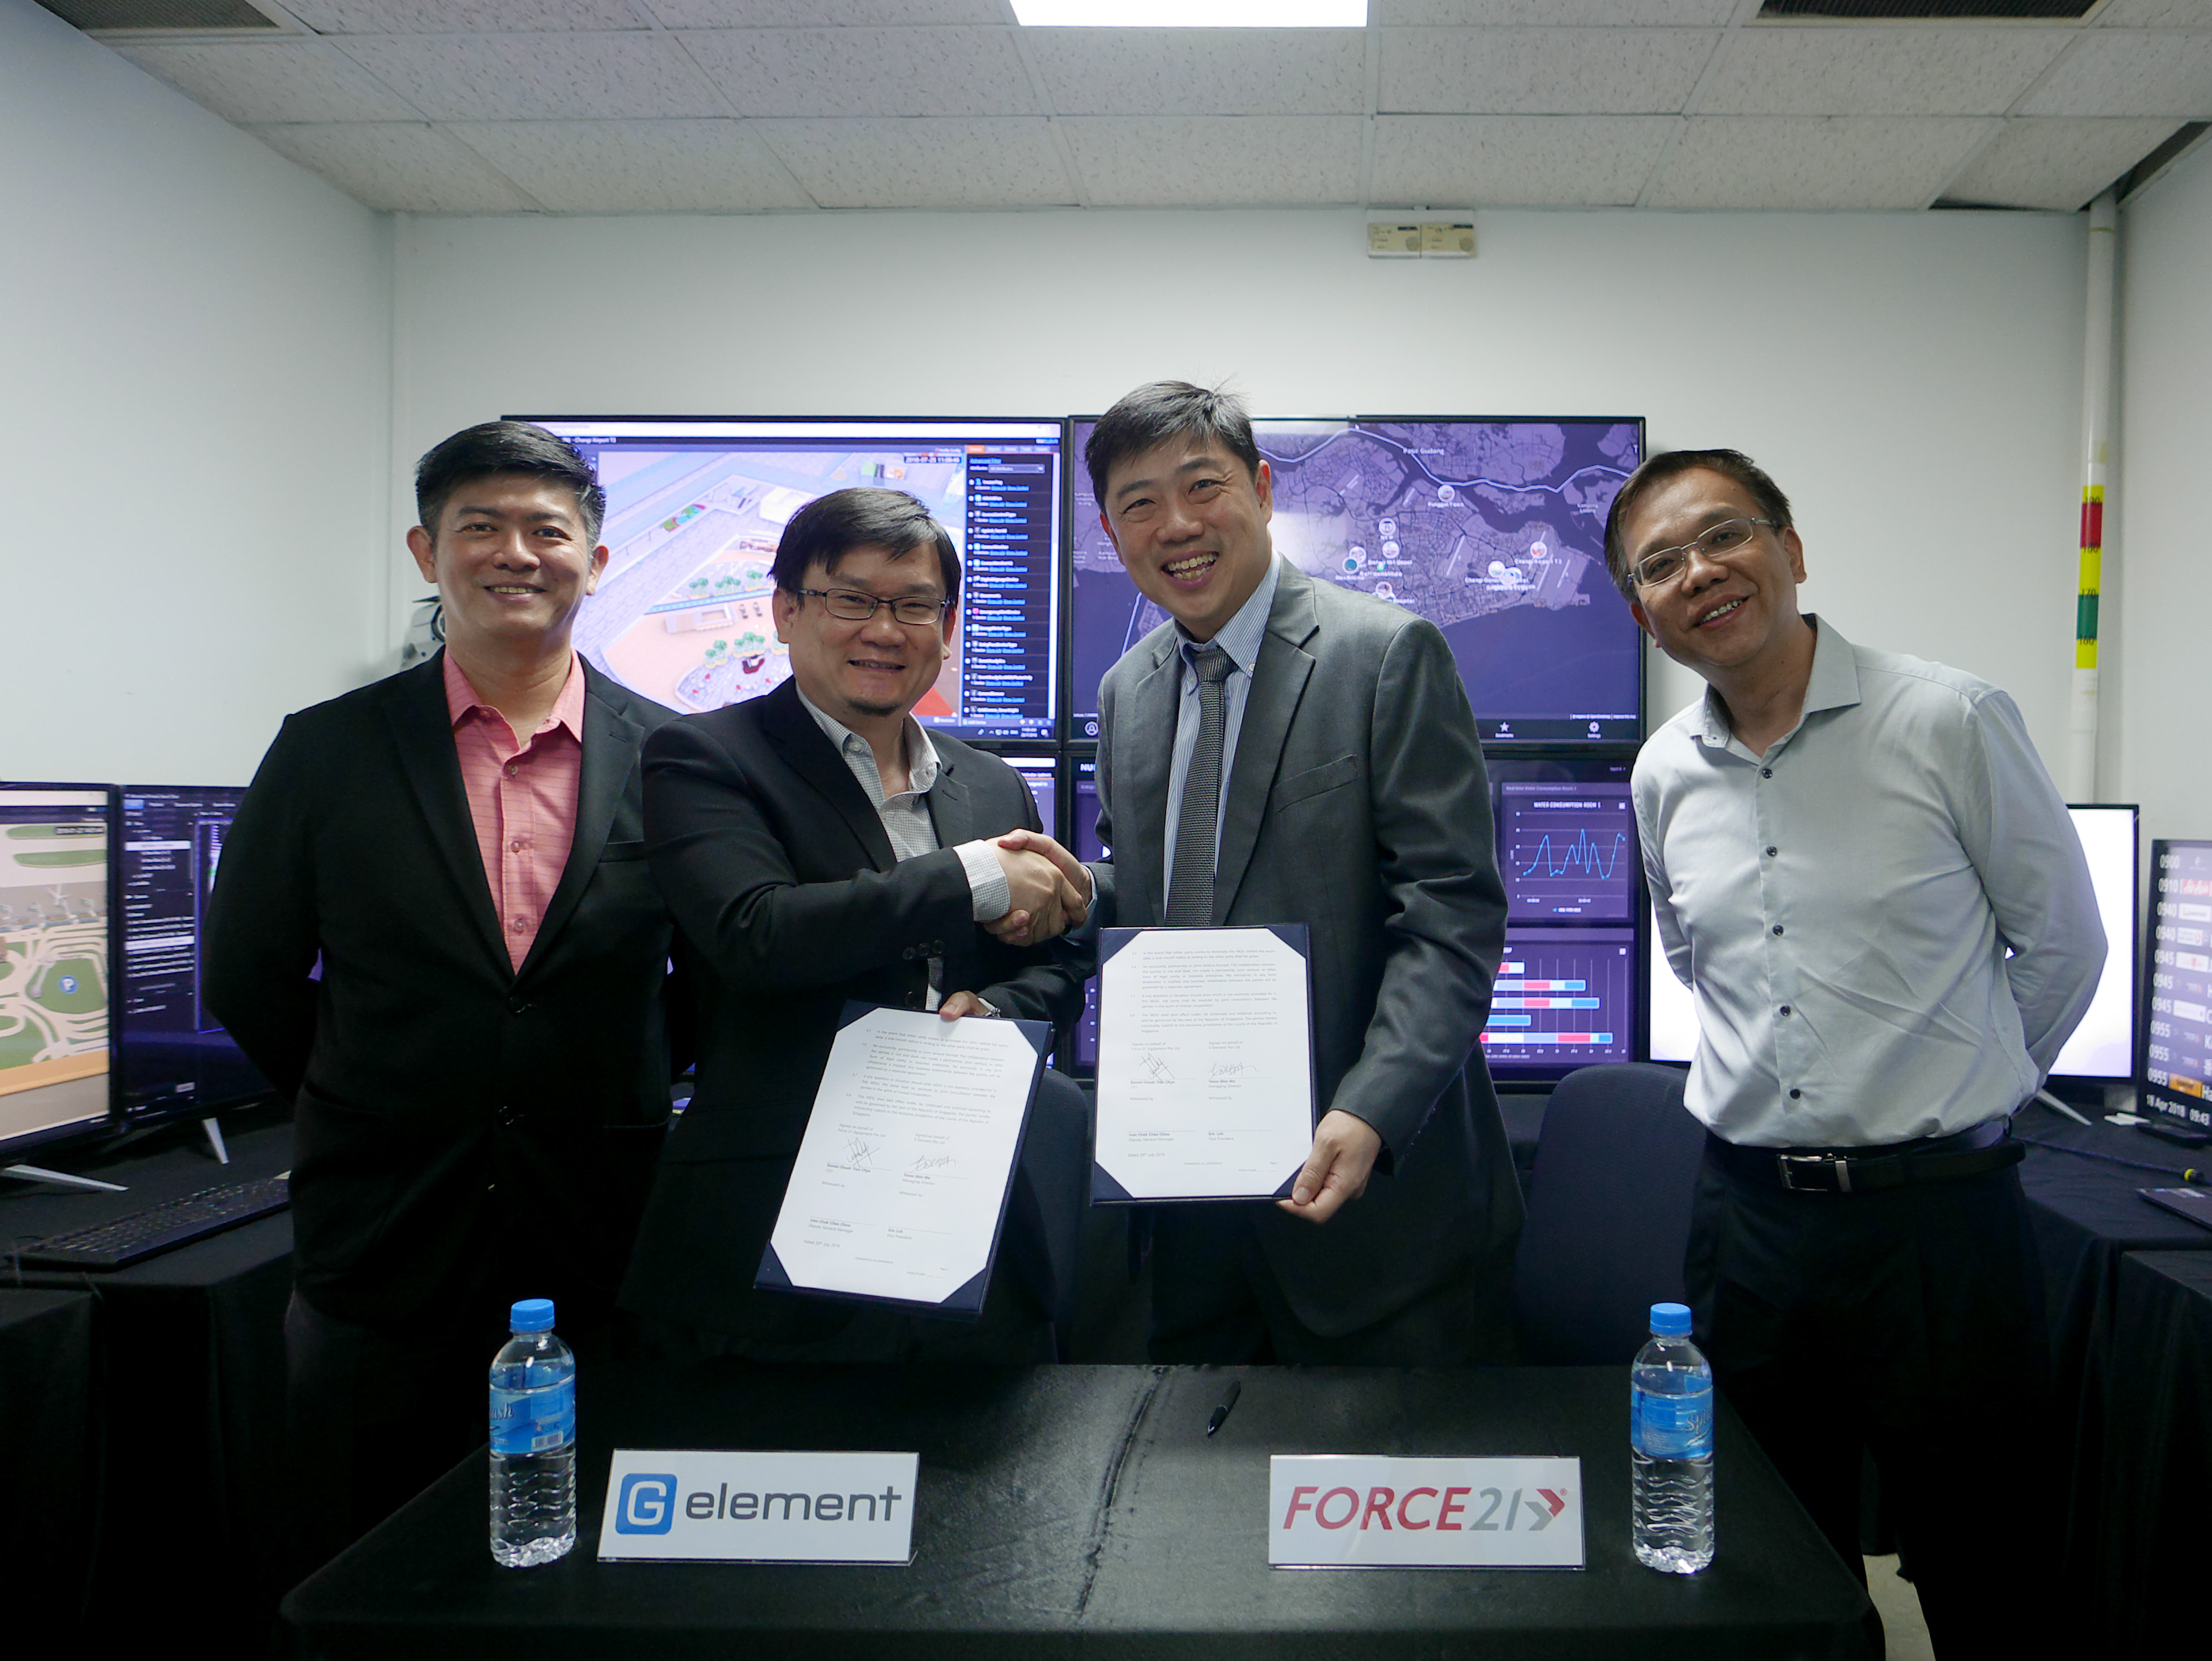 Mou Signing Ceremony between G Element and Force 21 Equipment